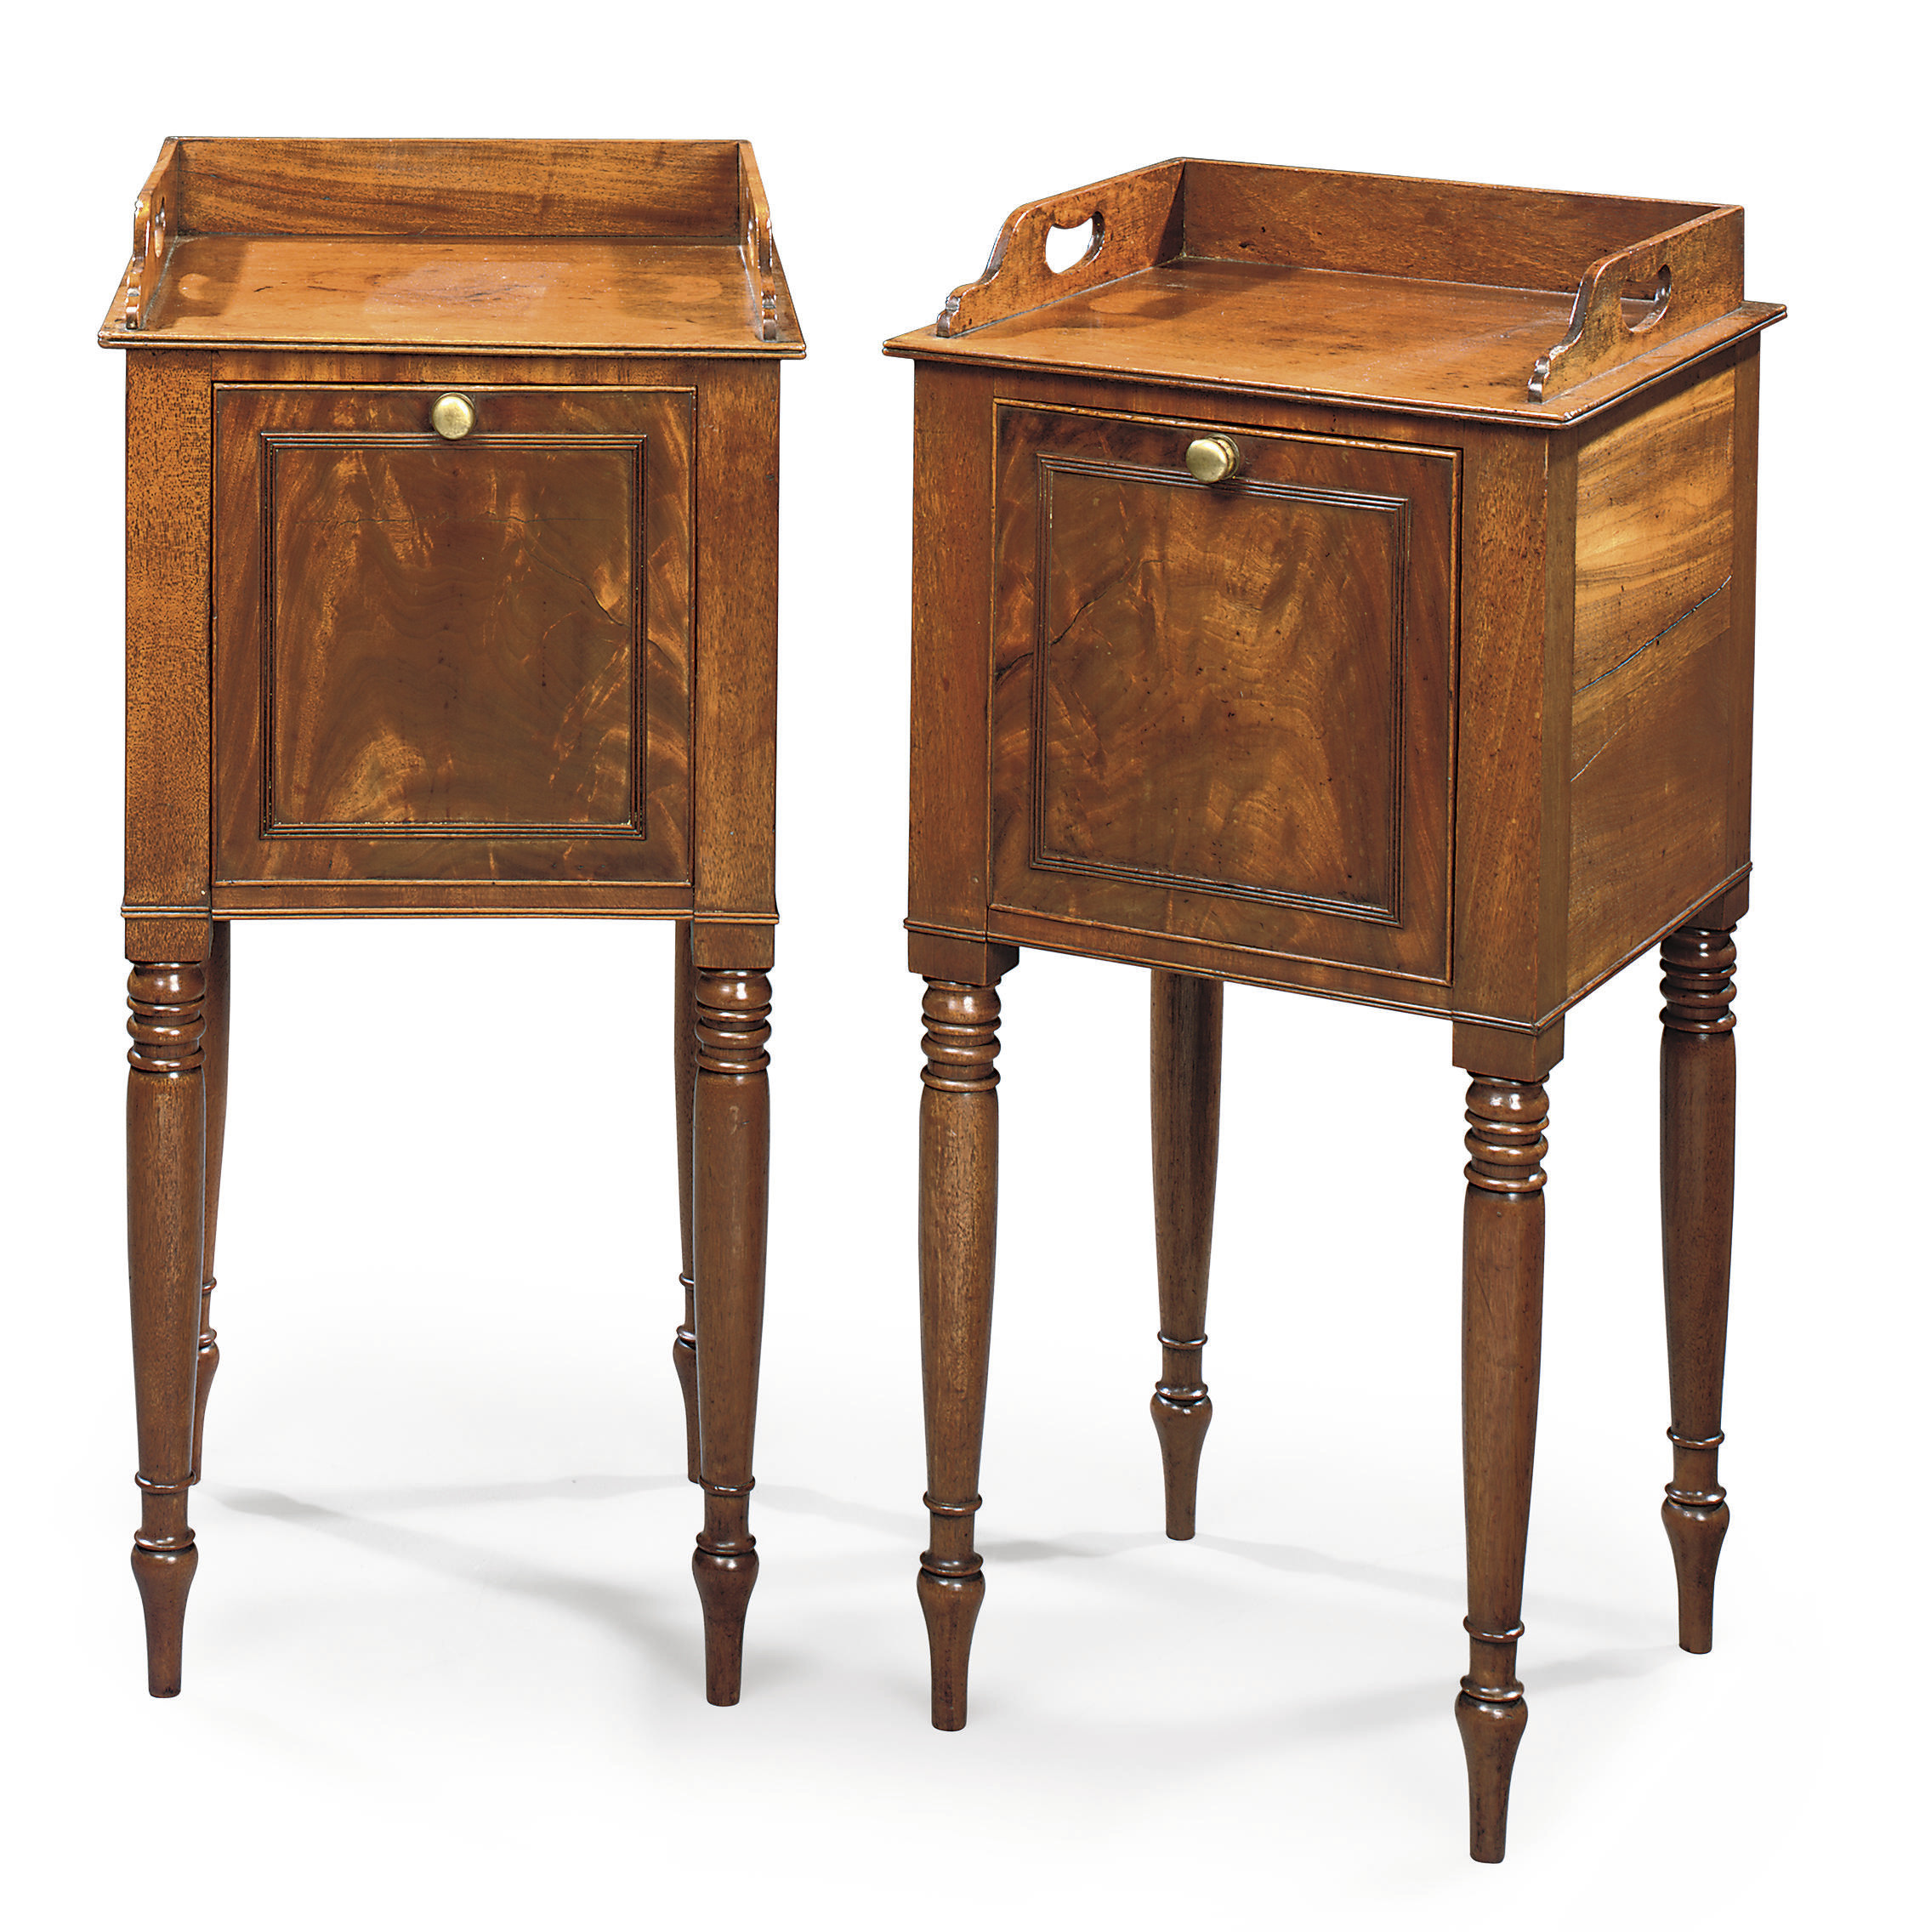 A PAIR OF REGENCY MAHOGANY BEDSIDE CUPBOARDS